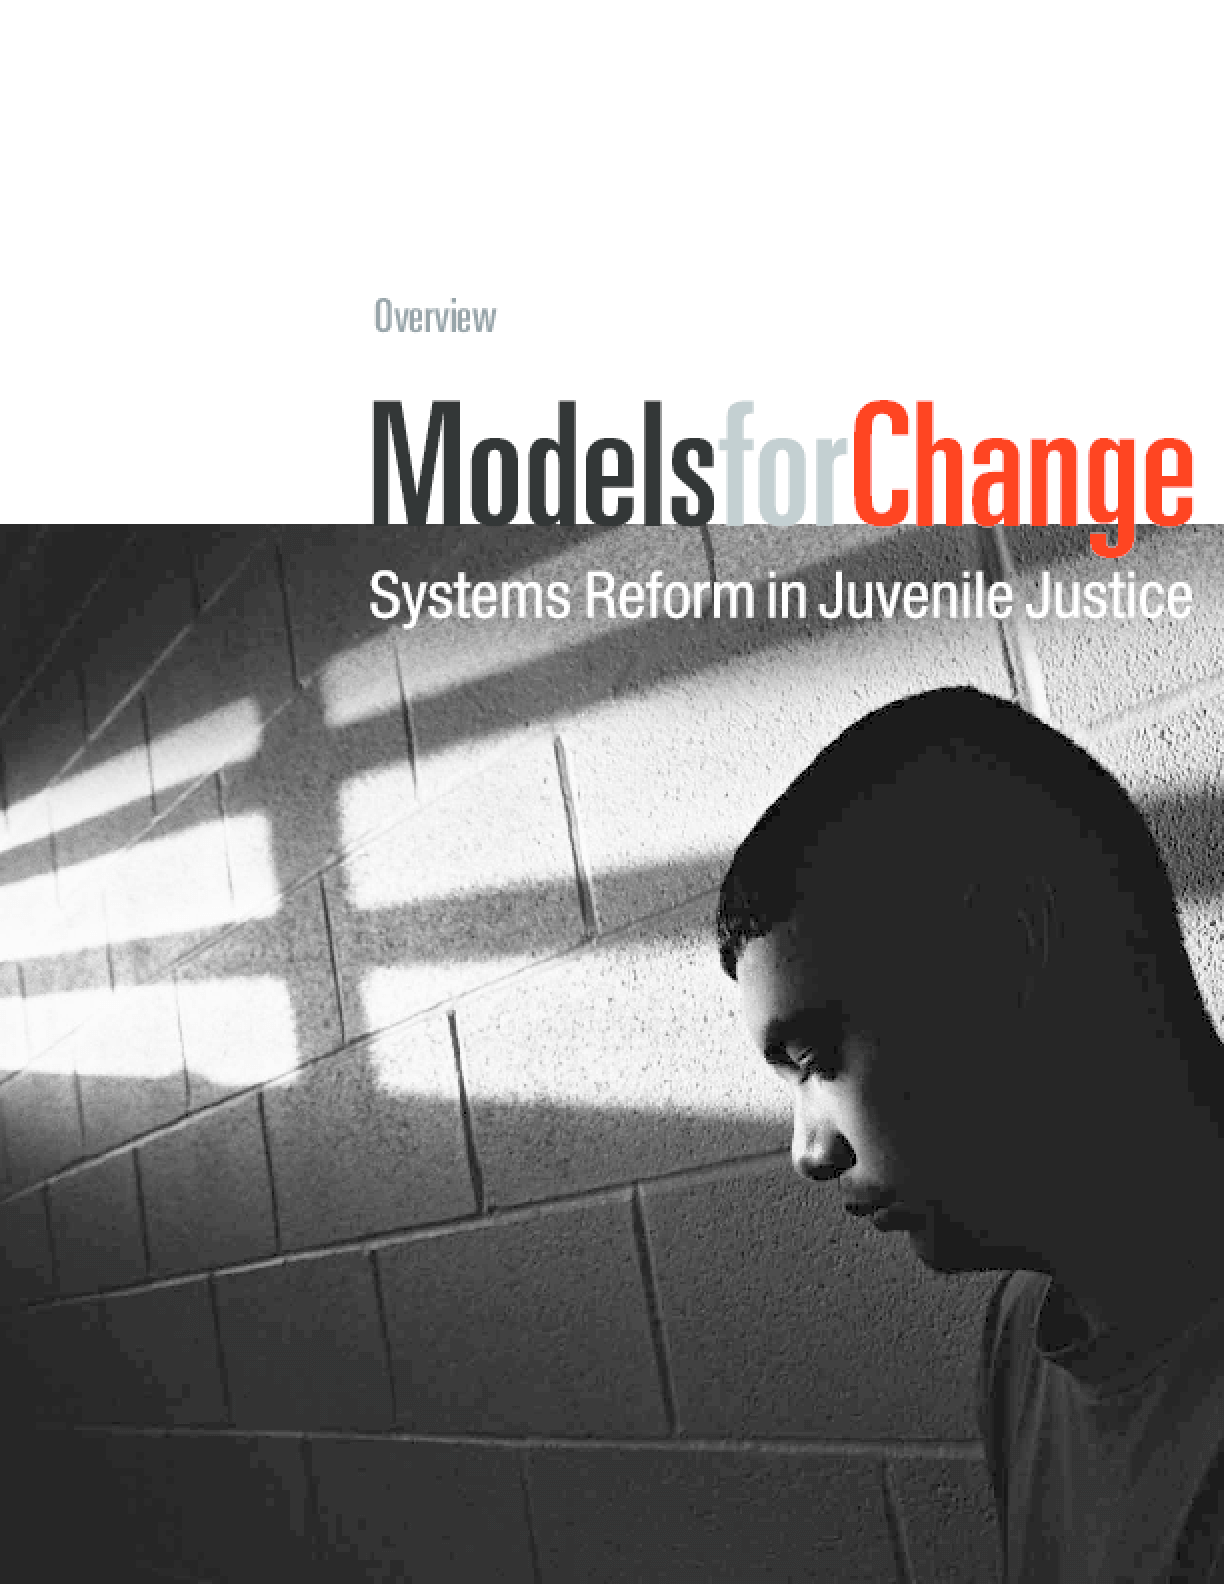 Models for Change: Systems Reform in Juvenile Justice